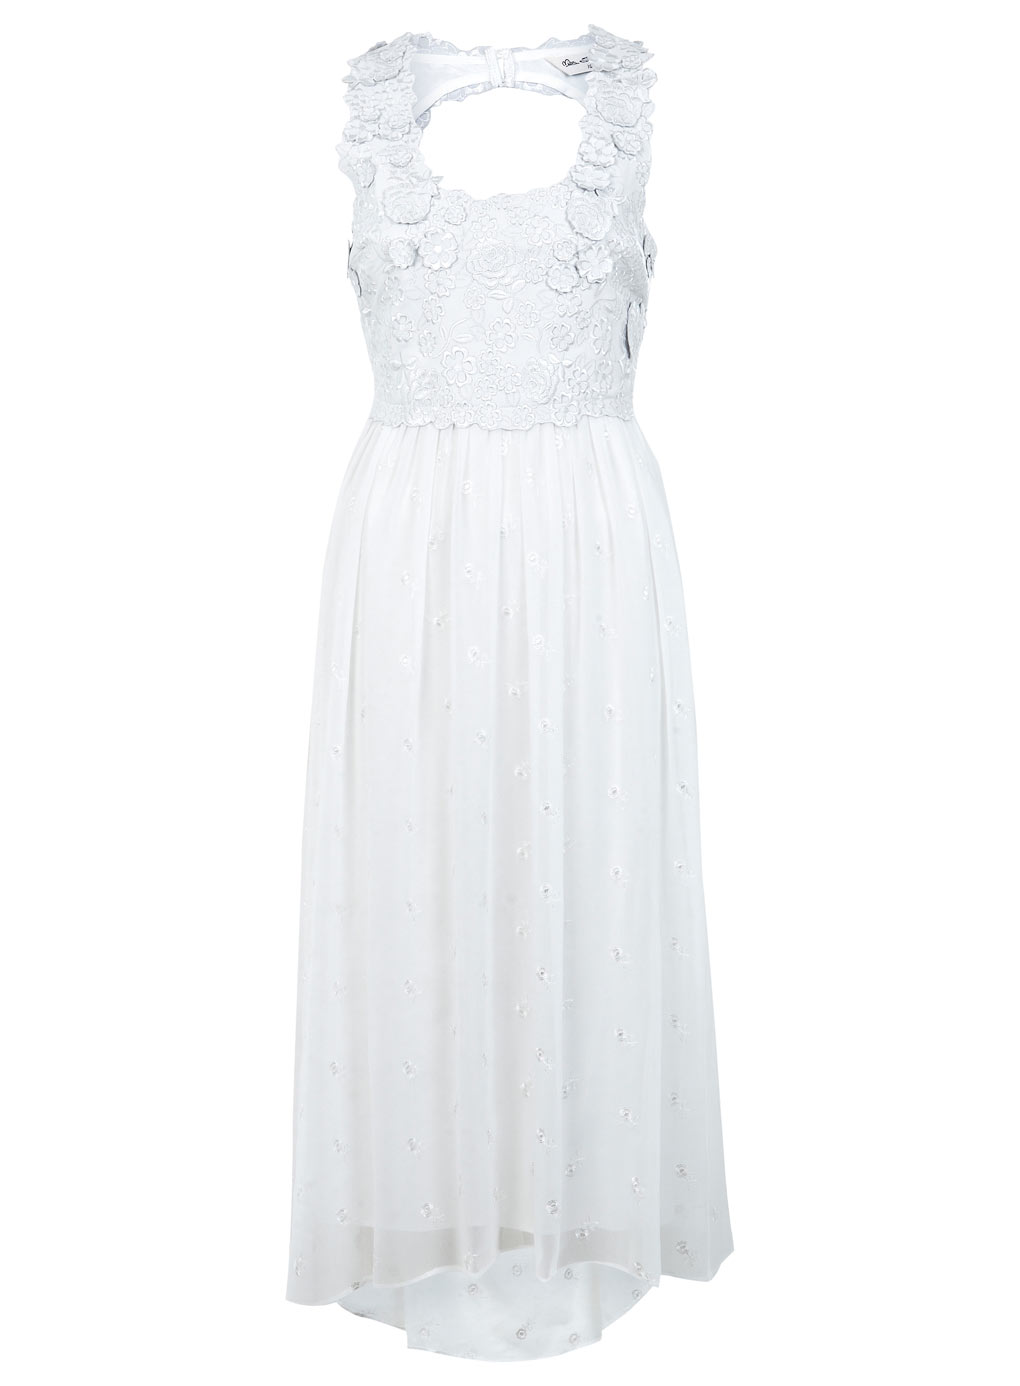 Miss Selfridge Designed By White Collection (7)